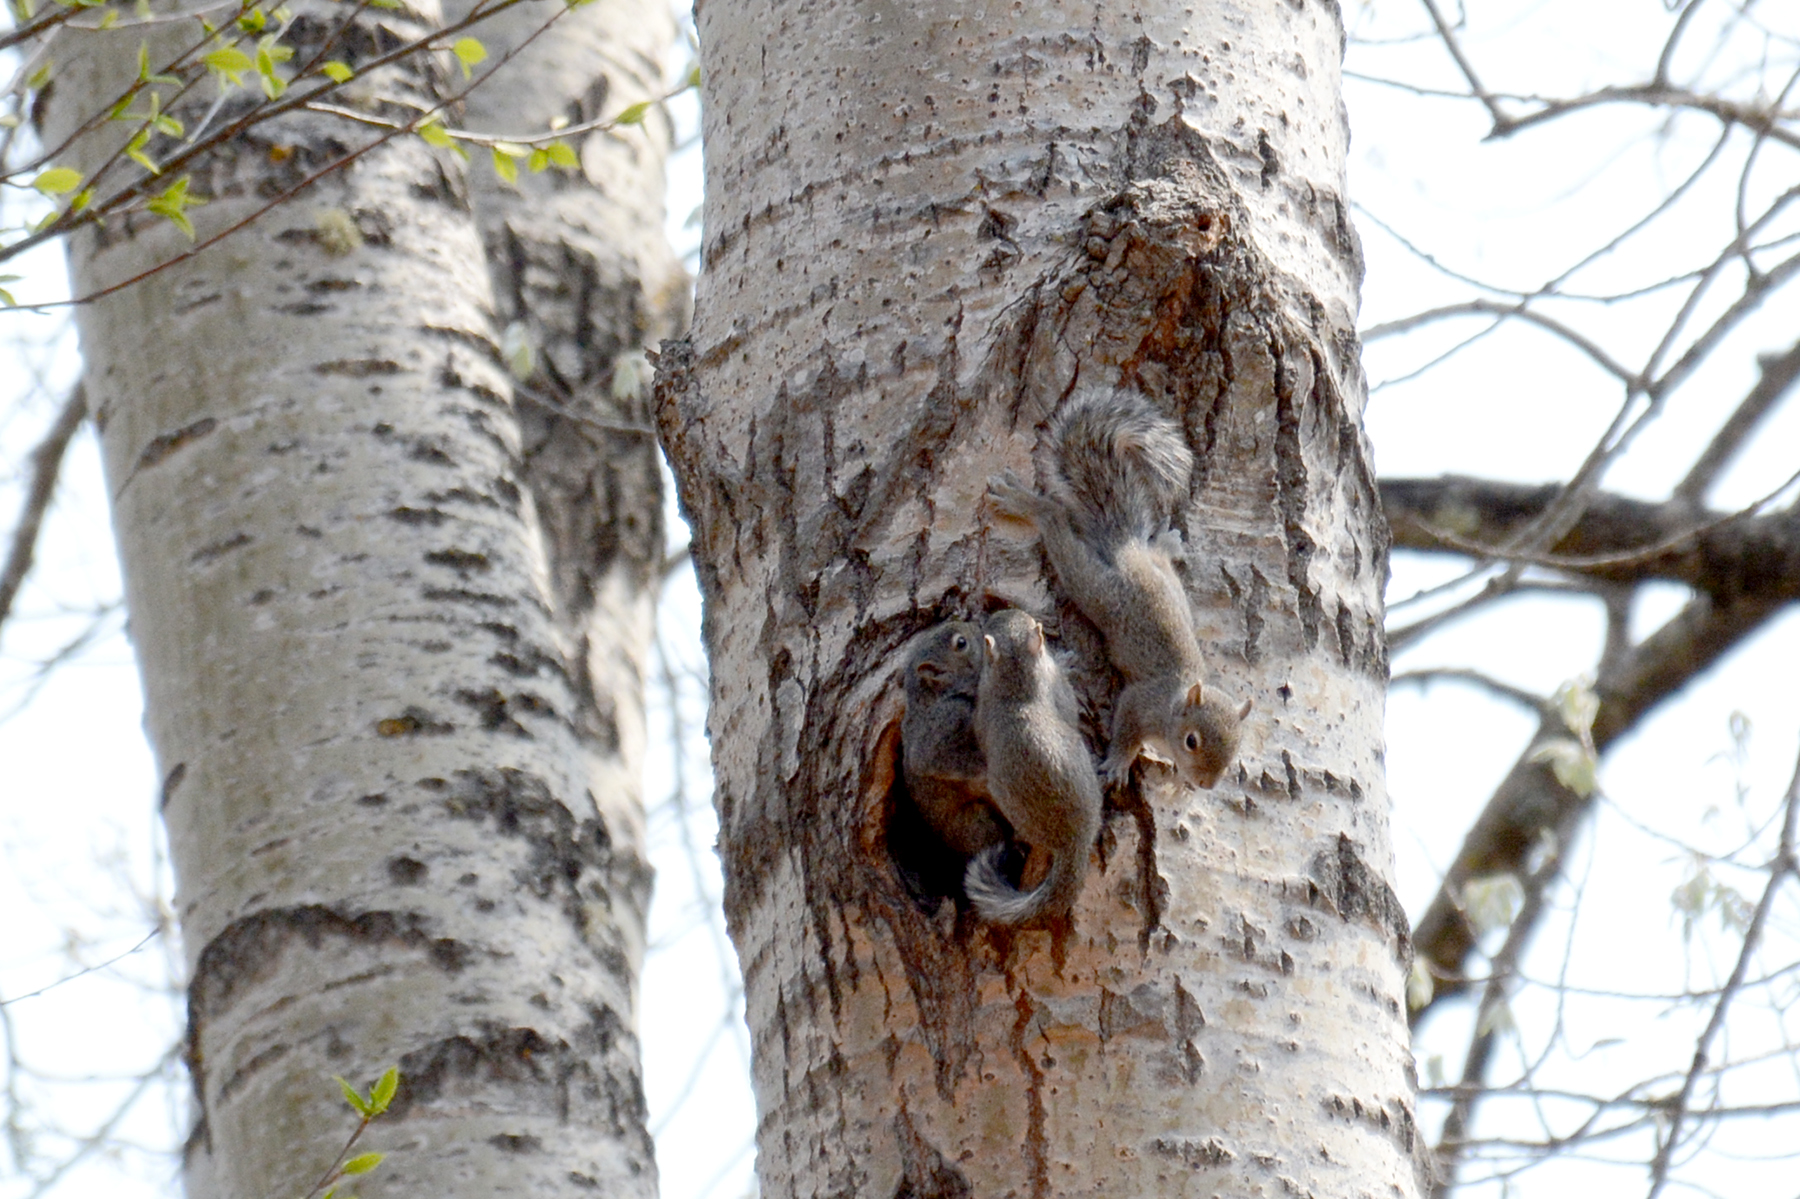 2016-05-19-naturefest-squirrels